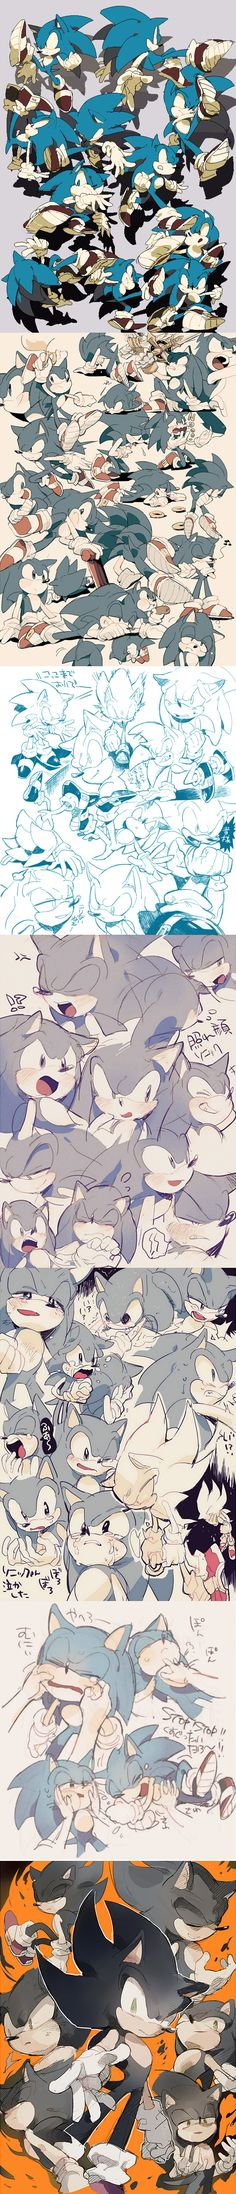 Sonic sketch by aoki6311 on deviantART